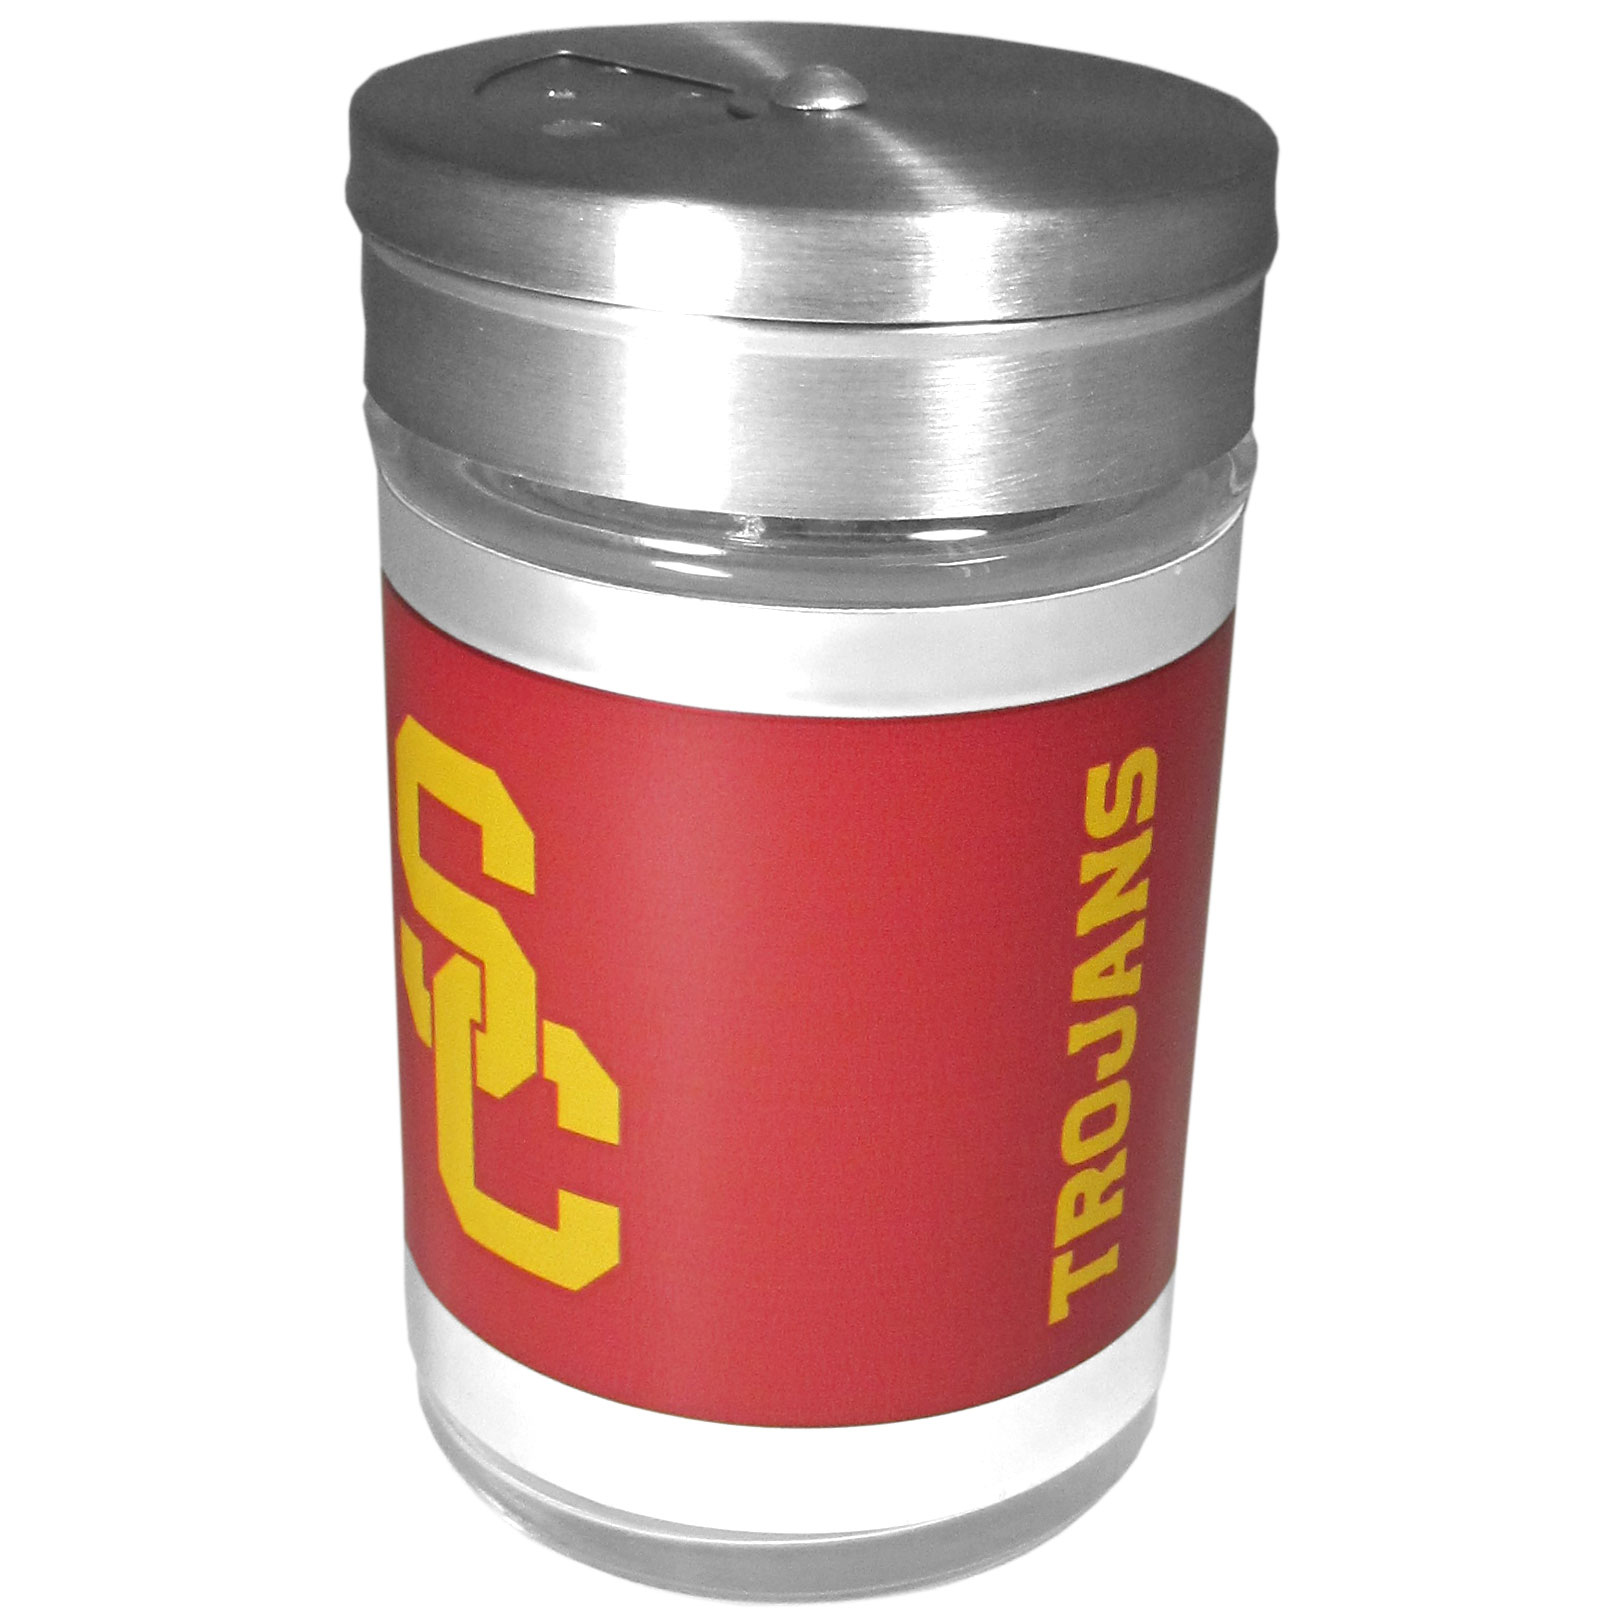 USC Trojans Tailgater Season Shakers - Spice it up with our USC Trojans tailgater season shakers! This compact shaker is 2 inch tall with a twist top that closes off the holes at the top making it perfect for travel preventing those messy spills. The shaker has wide holes perfect for keeping your pepper seeds or cheese toppings. The bright team graphics will make you the envy of the other fans while you are grilling up your tailgating goodies.